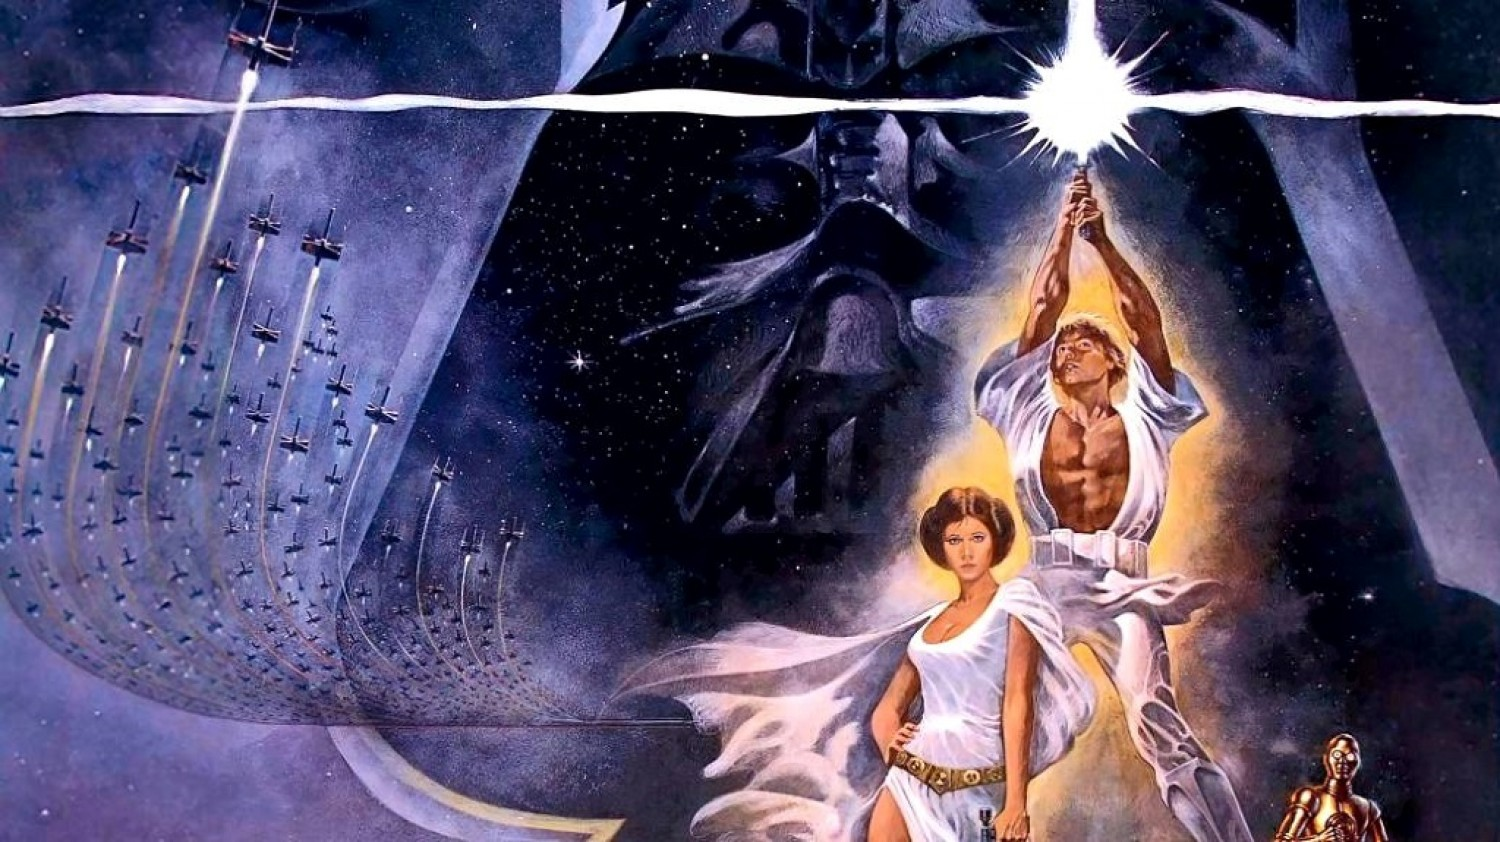 Star Wars - Original Trilogy (1977-1983) Honour Your Father? Thoughts on the 4th Commandment and Star Wars